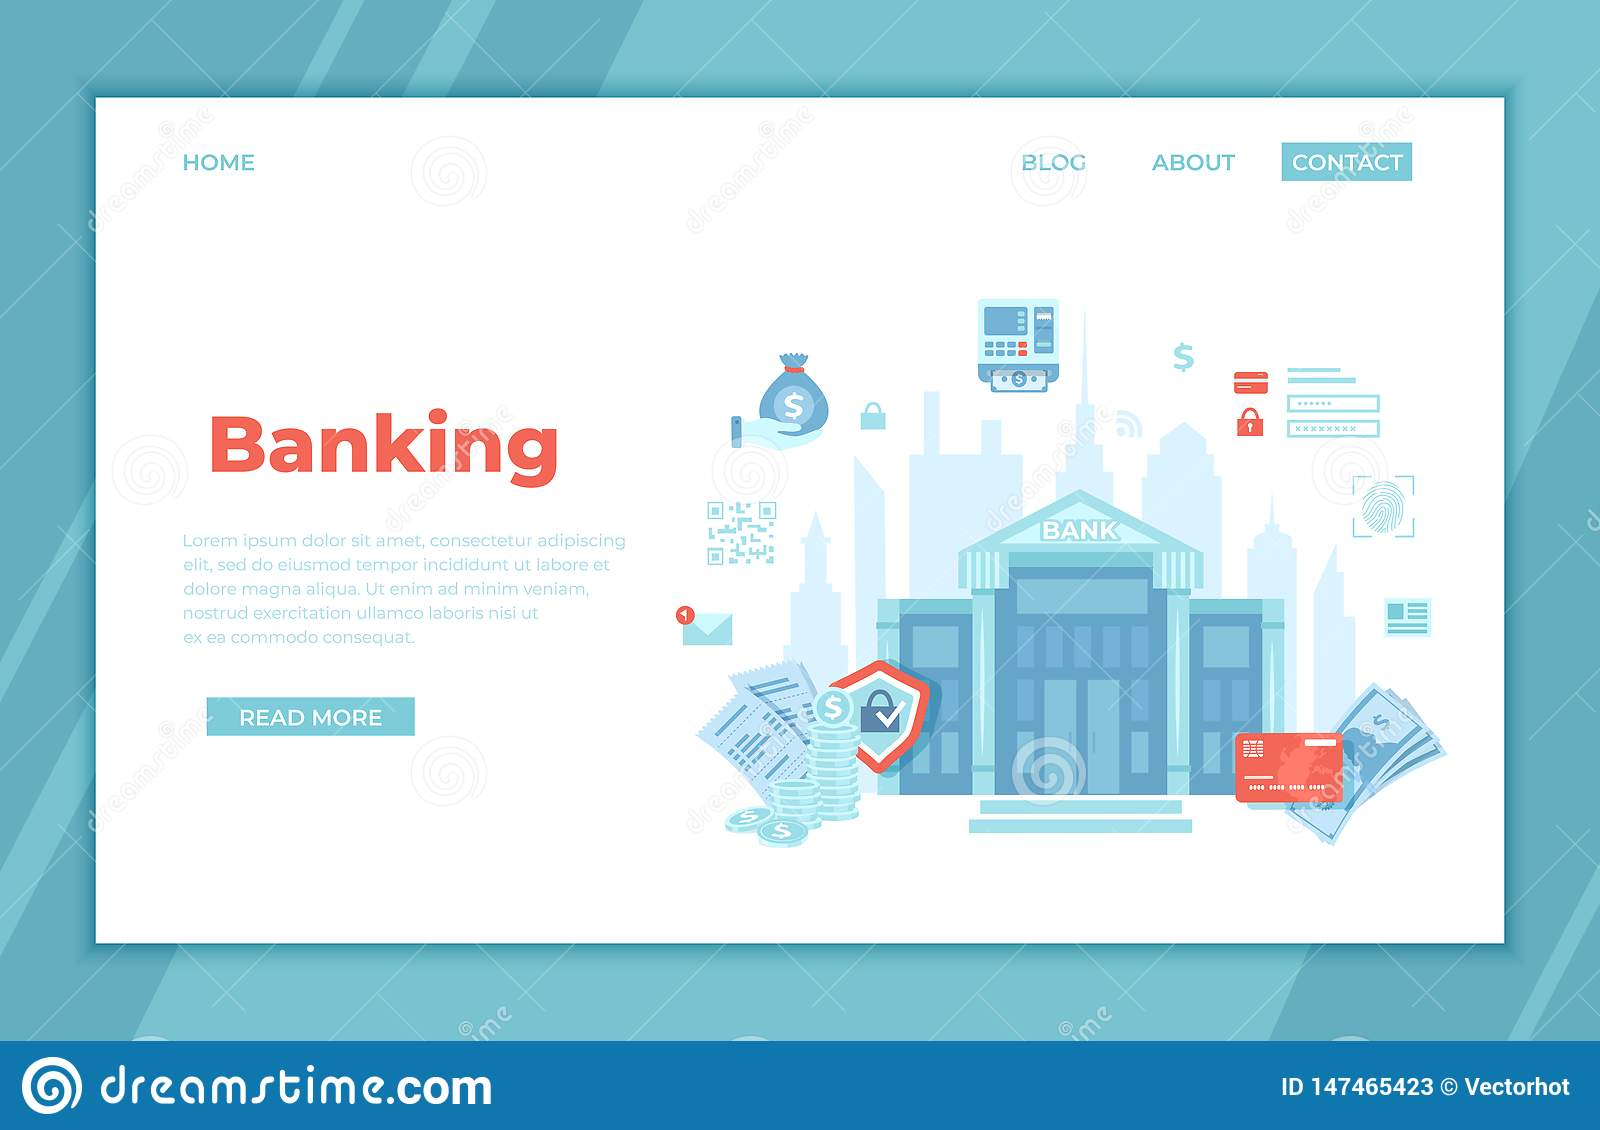 Banking, Bank building, Financial service. Money exchange Transfer Payment Accounts operation. Banknotes, coins, credit card.